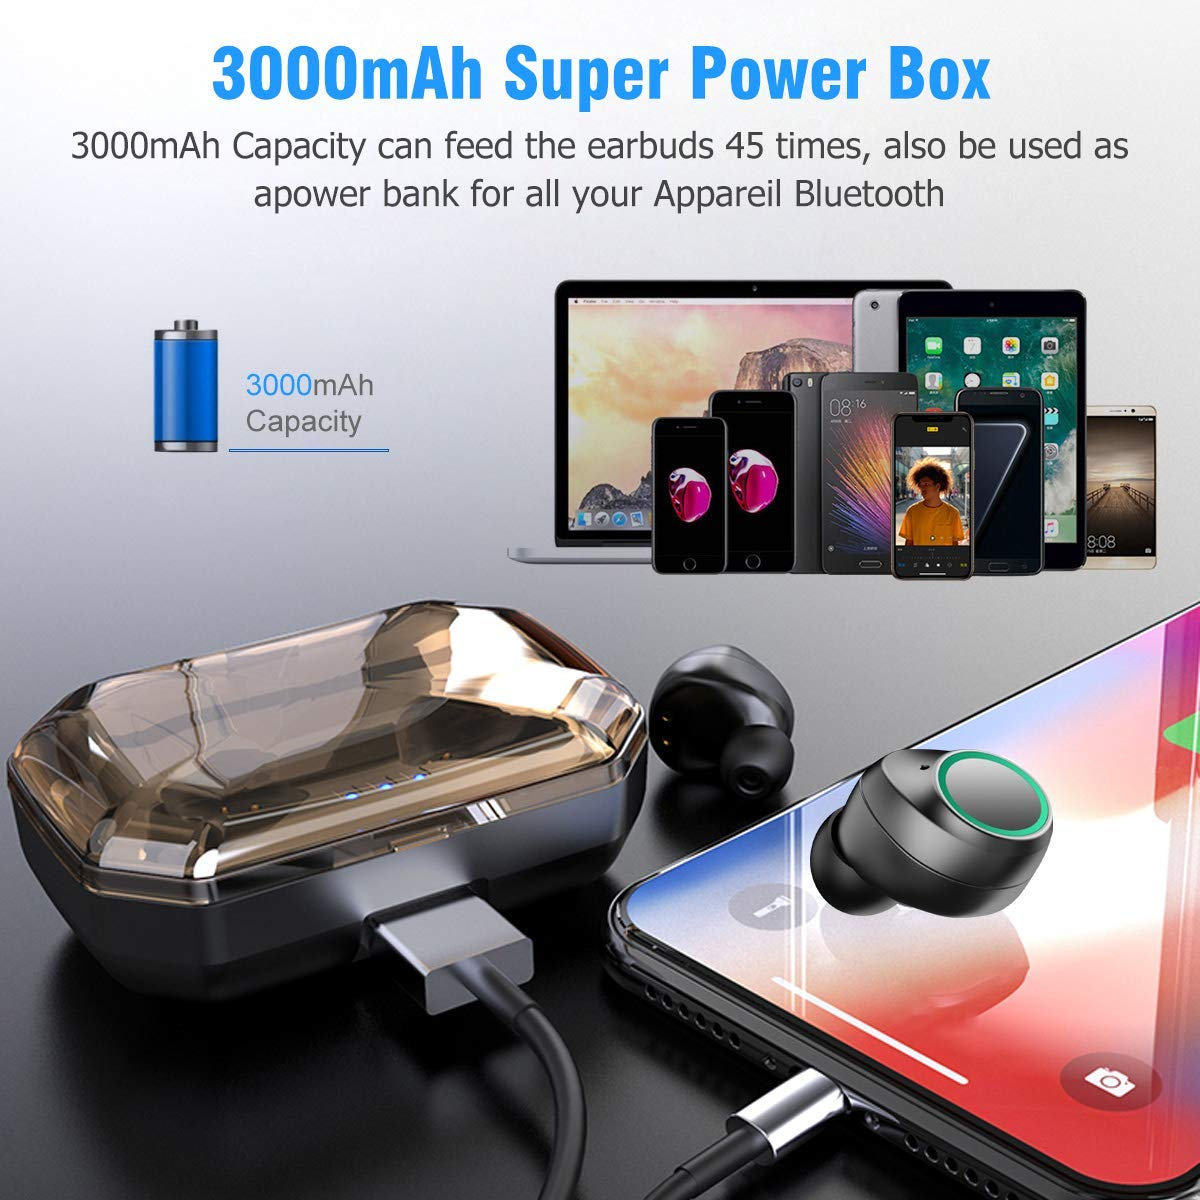 1514745971e Amazon.com: Bluetooth 5.0 Earbuds, Muzili Sport True Wireless Earbuds,  3000mAh for 125h Play Time, 9mm Driver Unit for Stereo Hi-Fi Sound, IPX6  Waterproof, ...